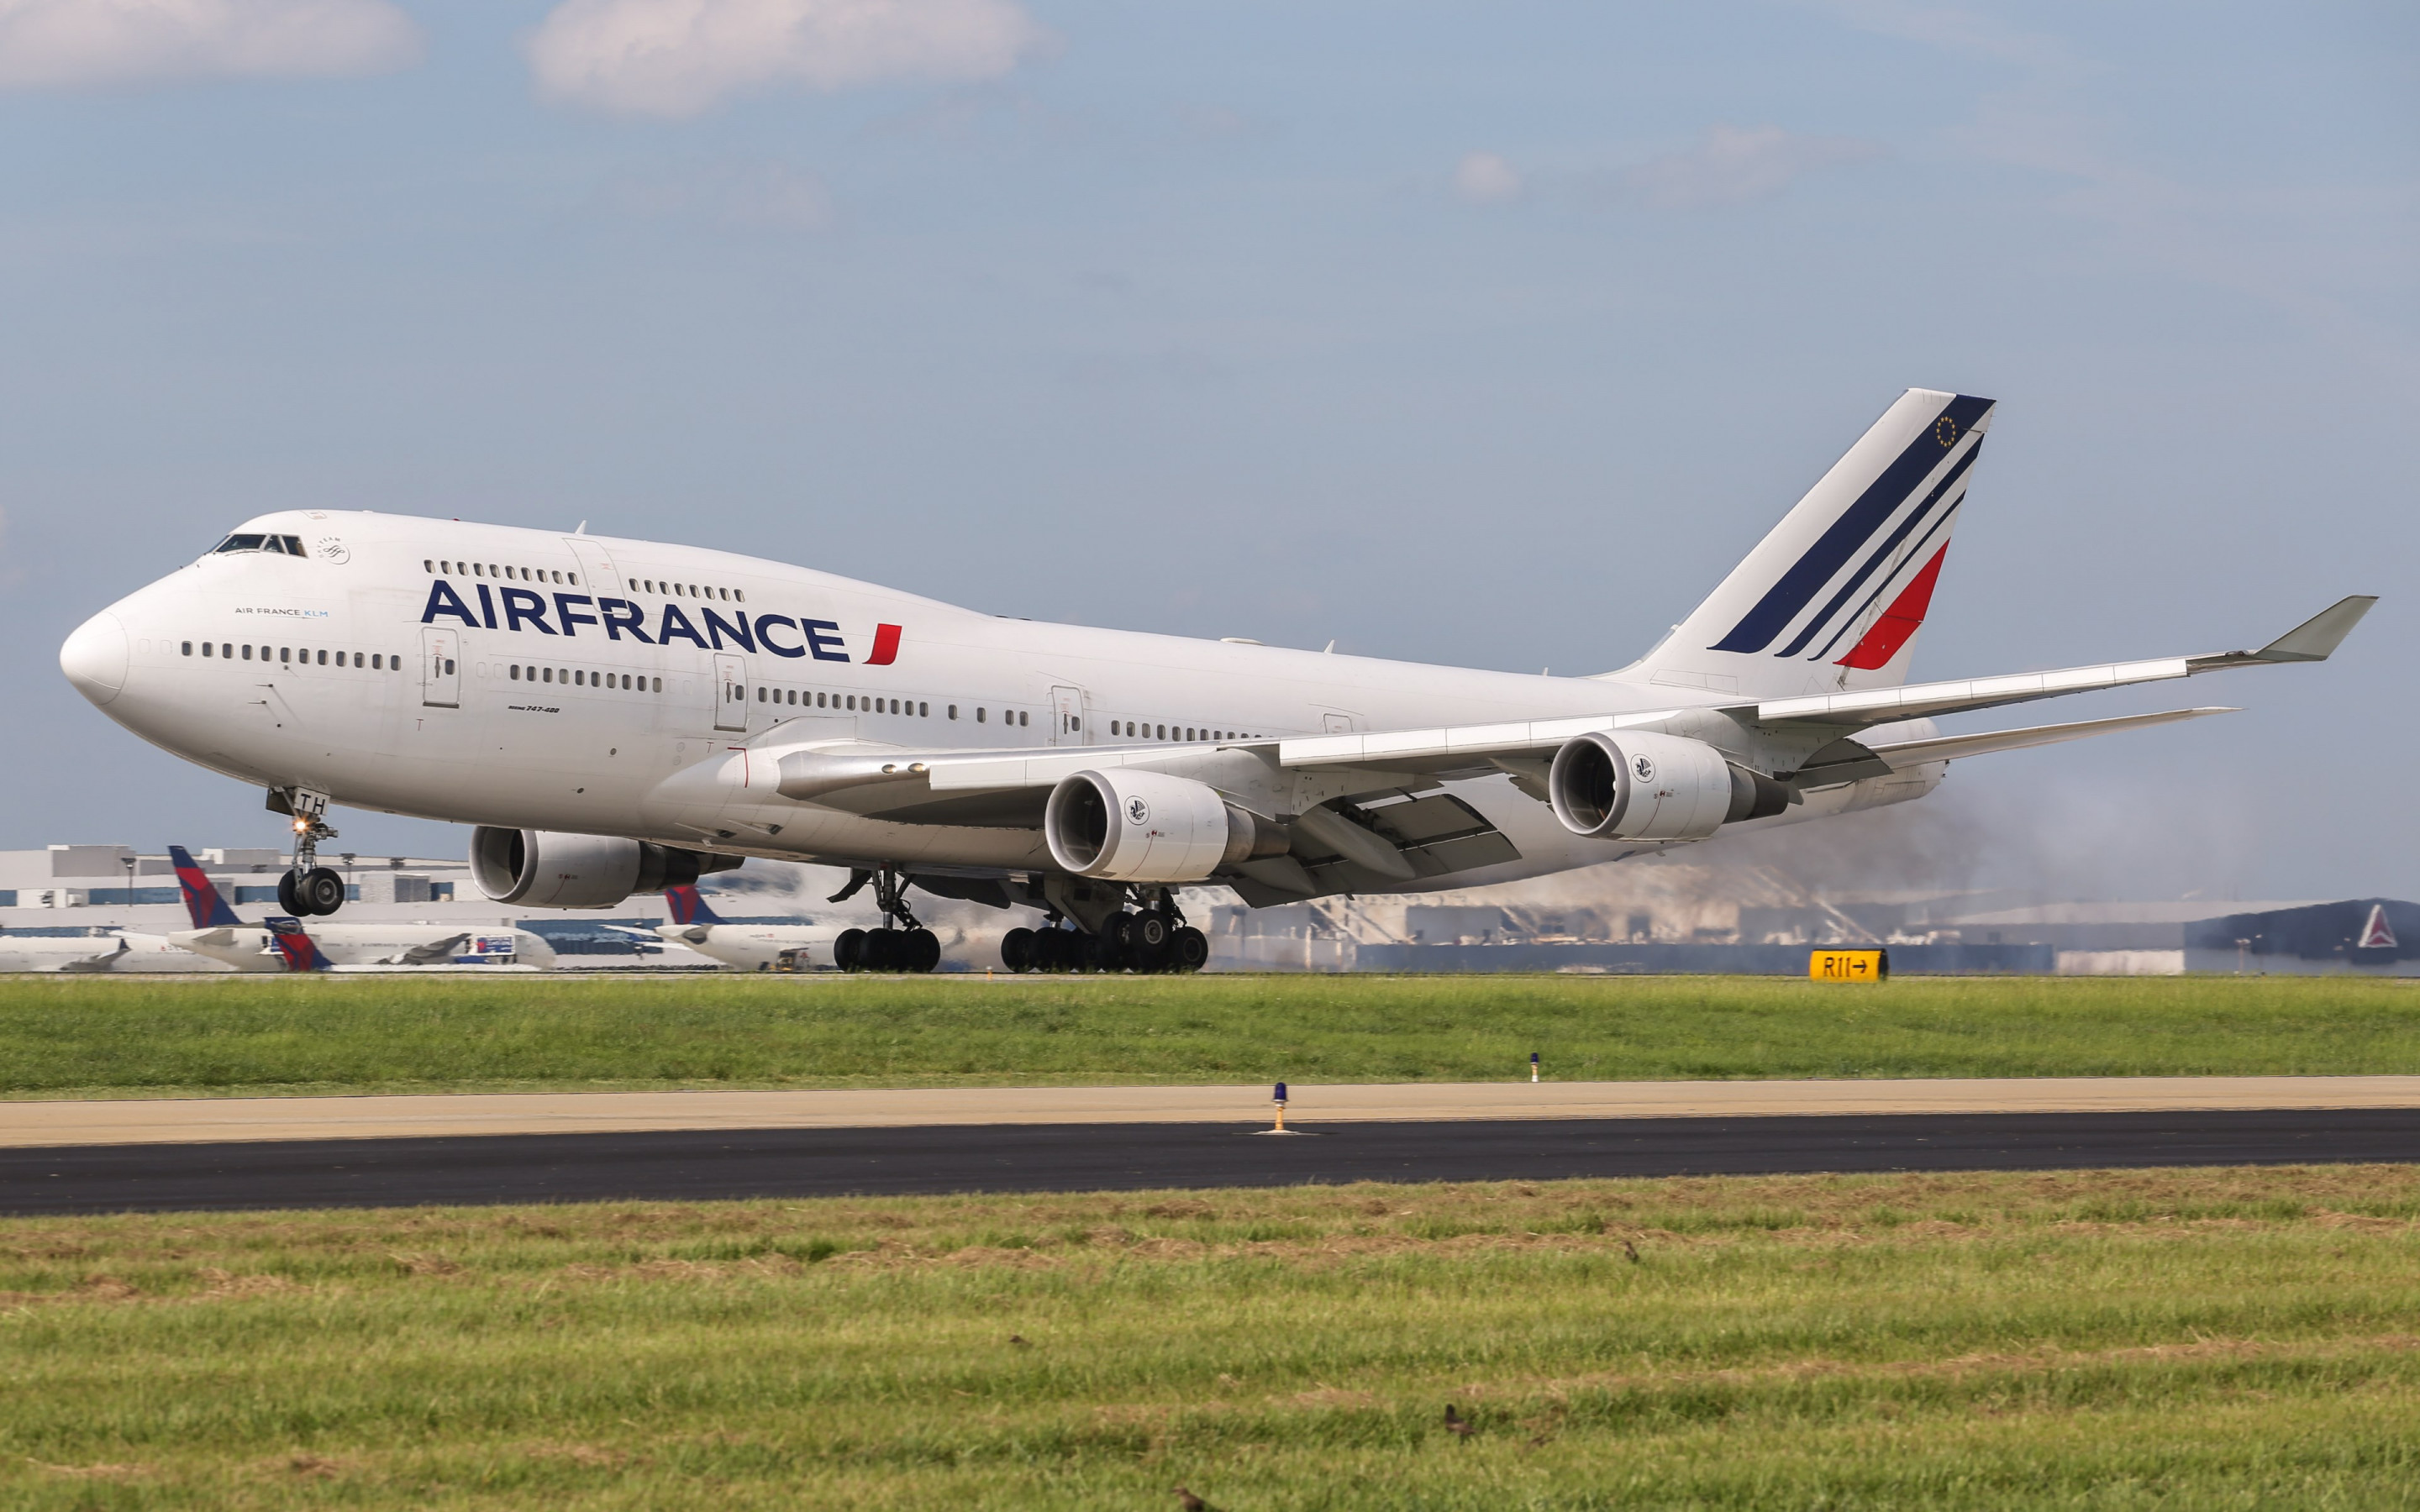 Download Wallpaper Air France Boeing 747 2880x1800